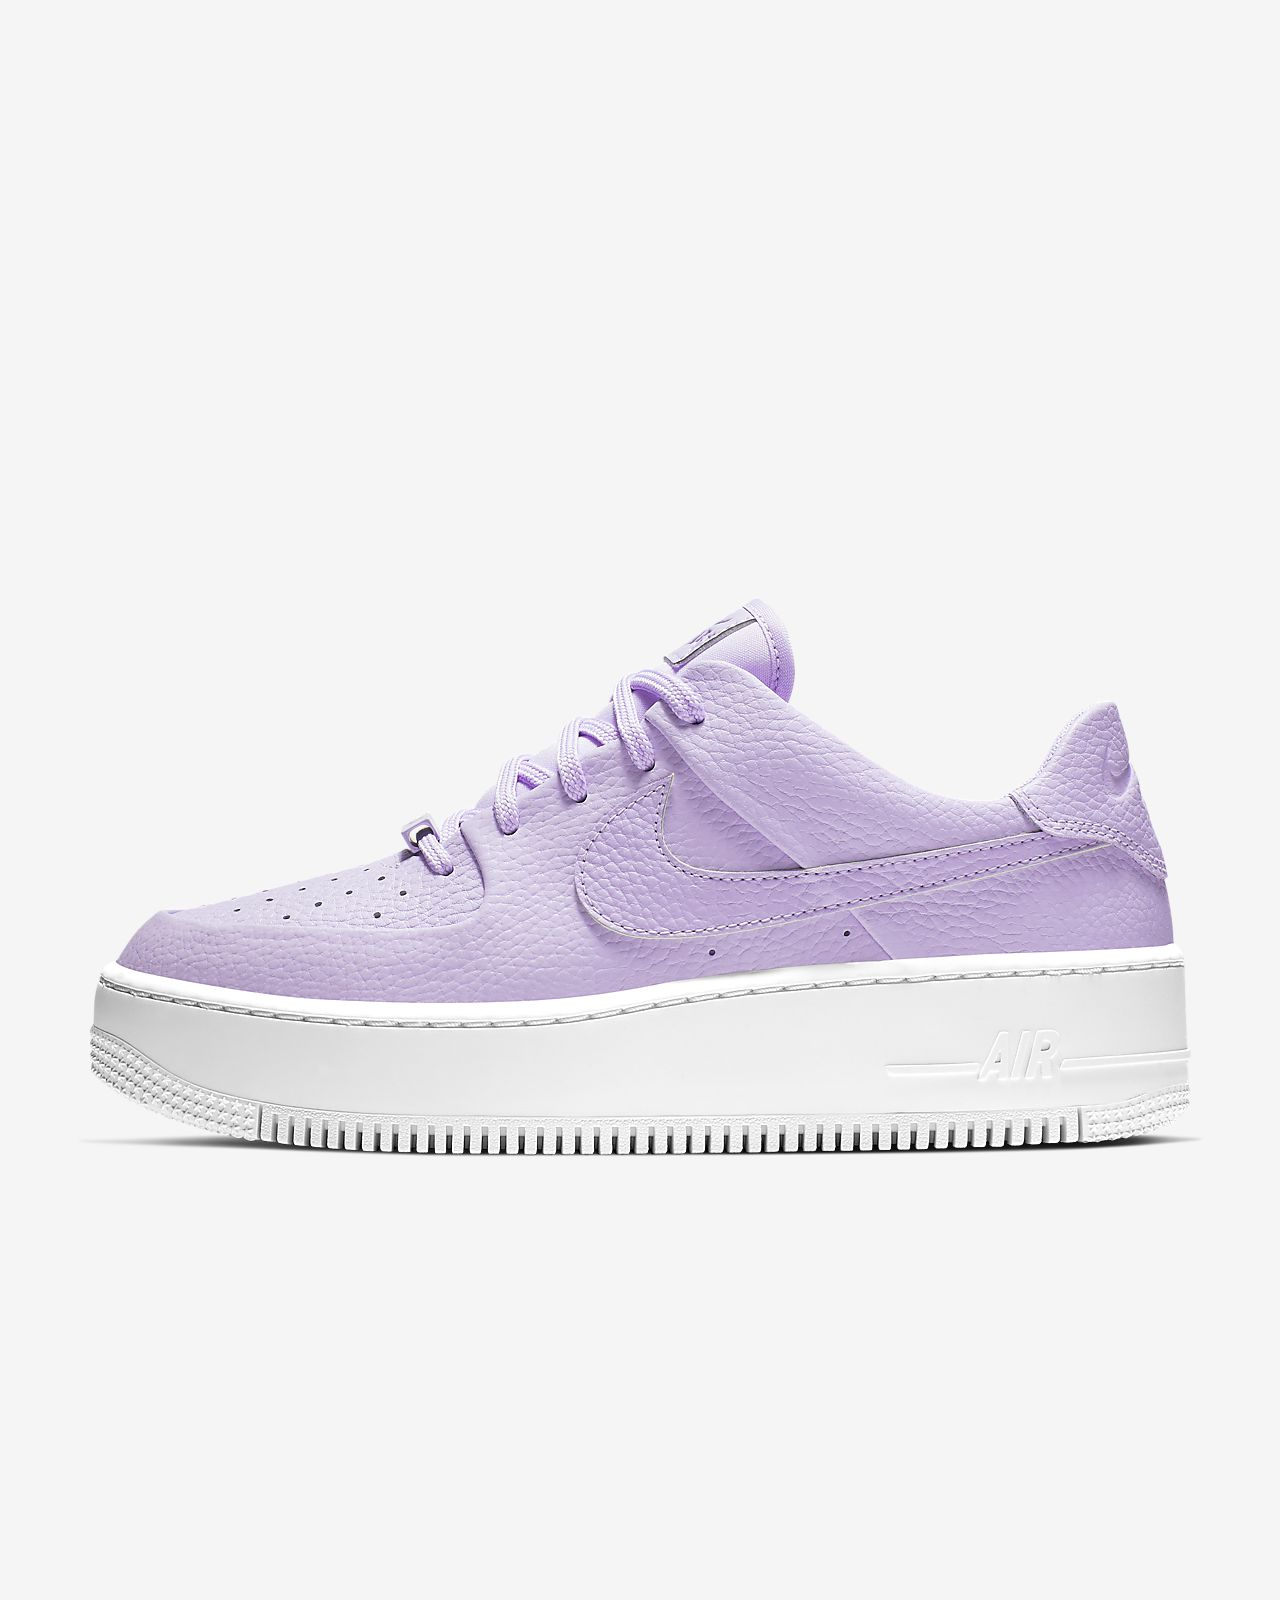 timeless design d7c67 be873 ... Skon Nike Air Force 1 Sage Low för kvinnor